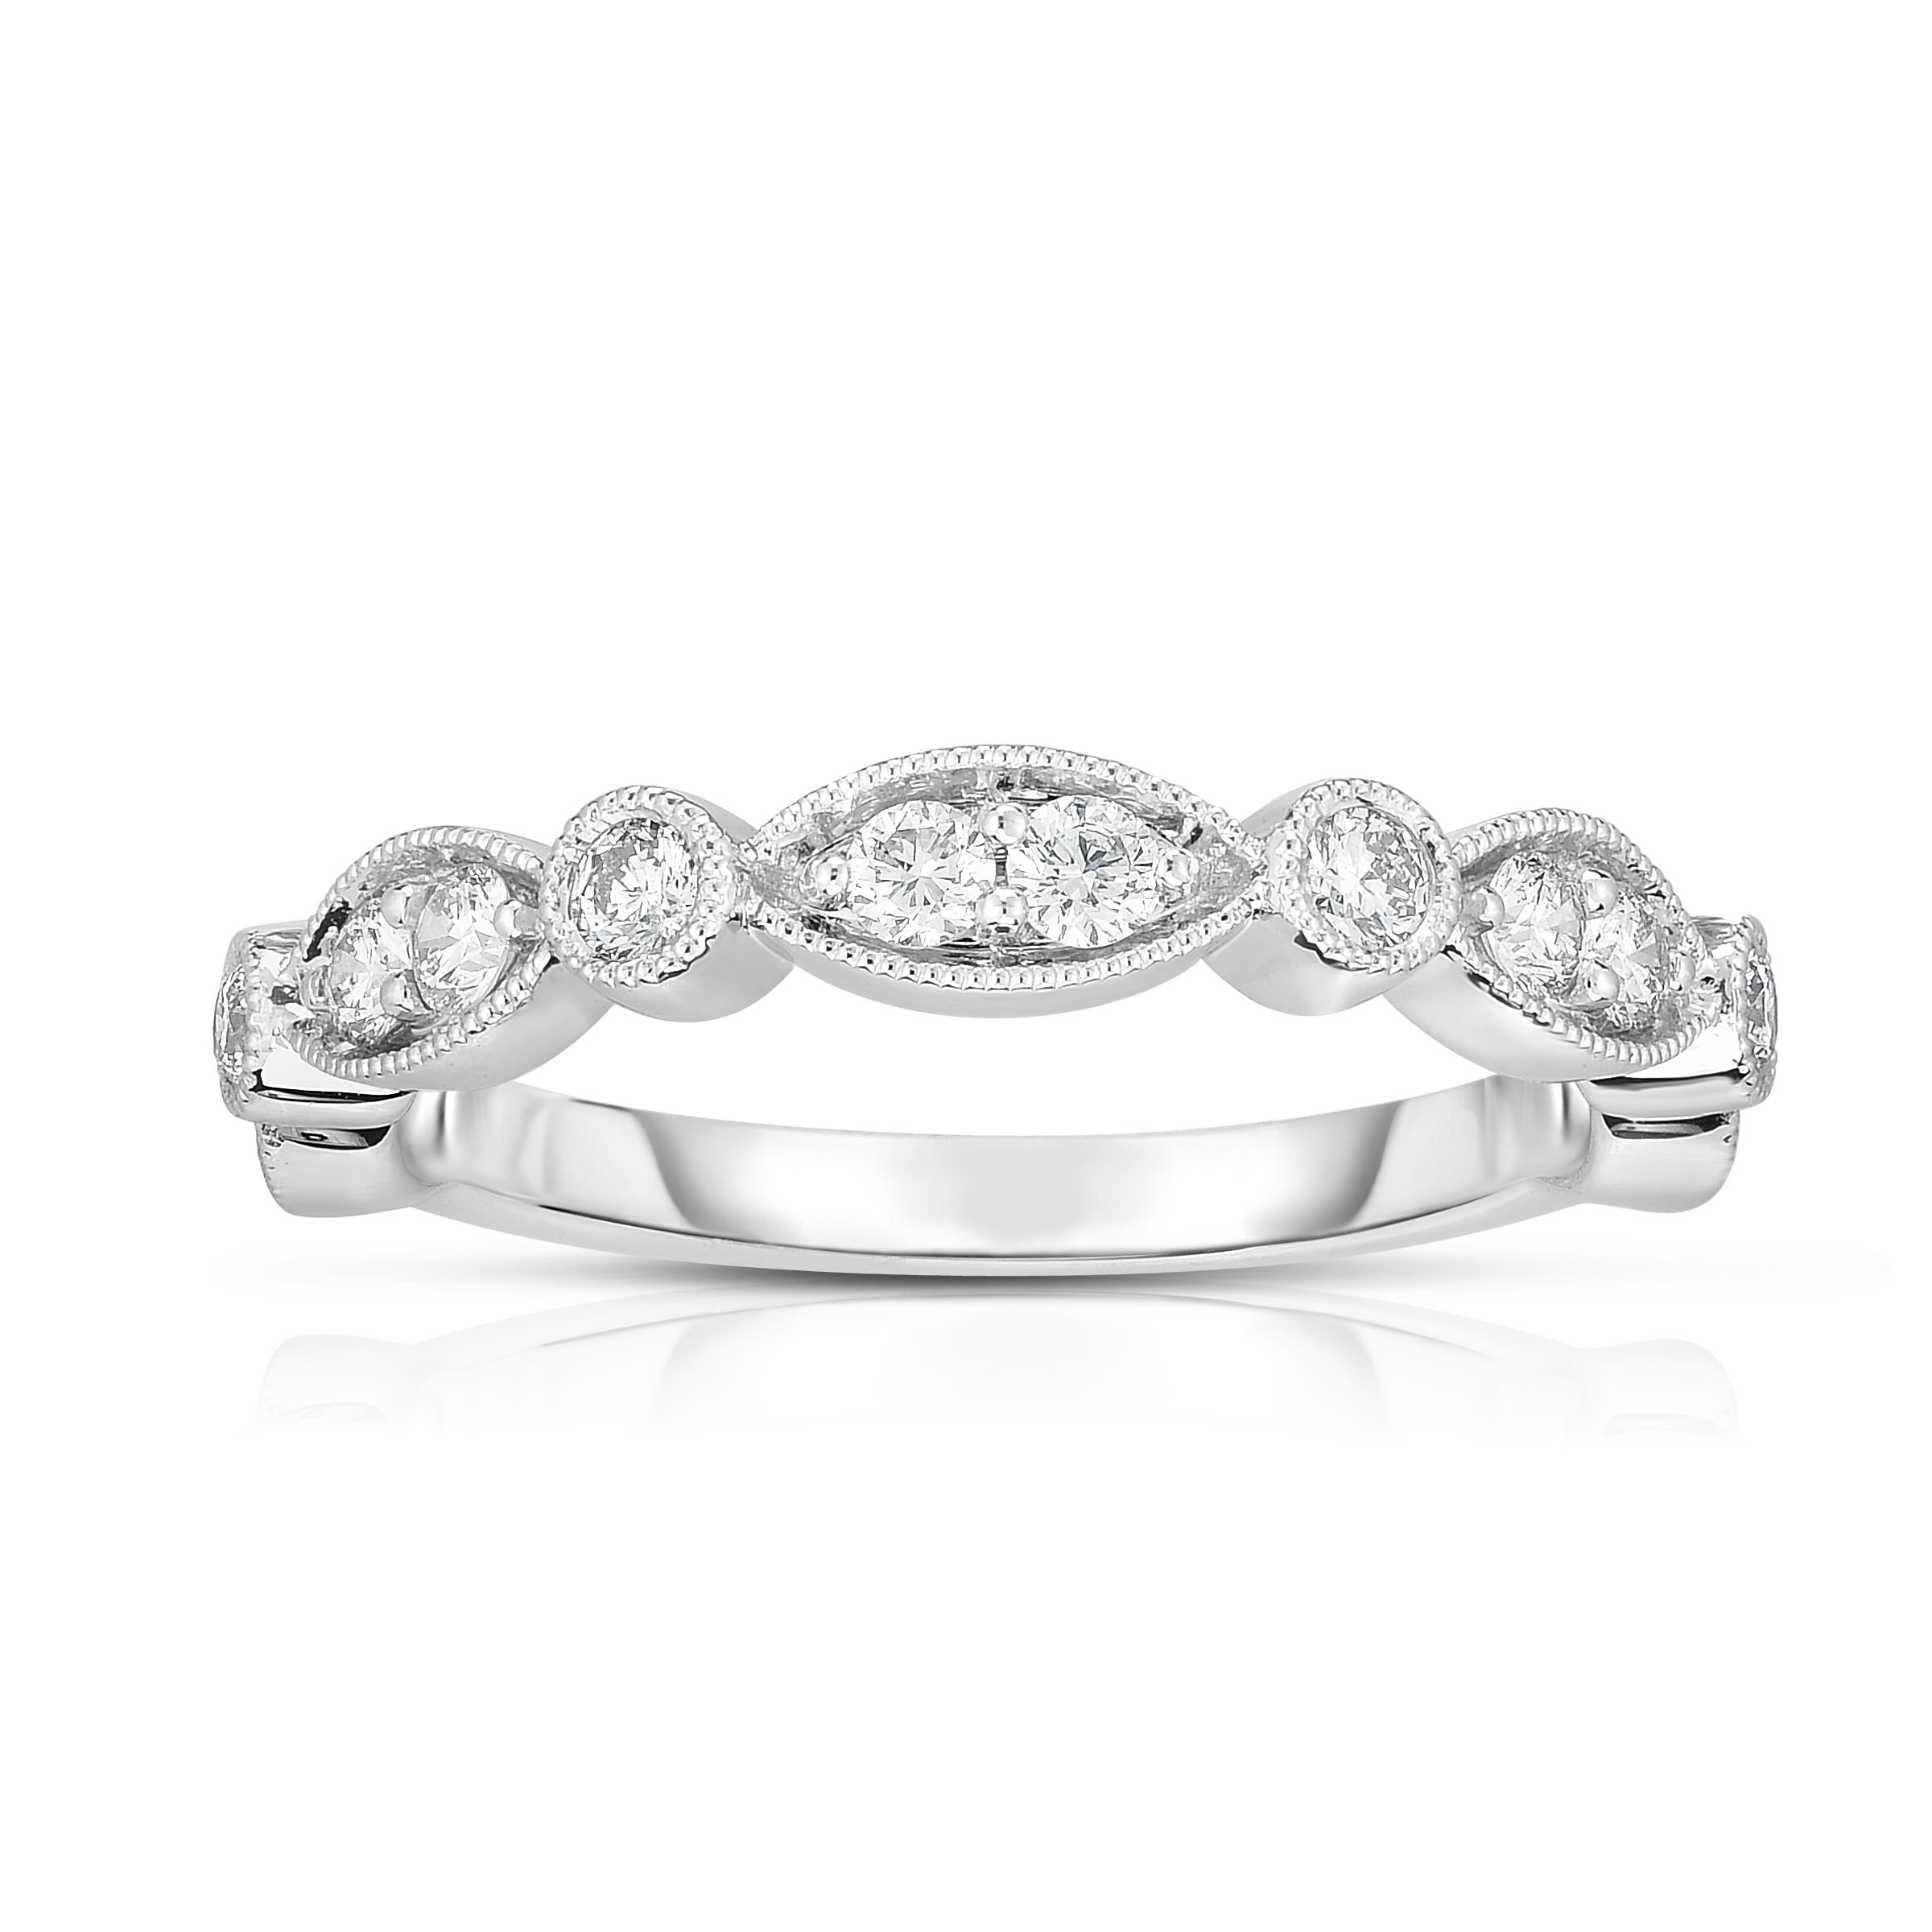 14K White Gold Diamond Stackable Band With Marquis And Round Throughout Recent Baguette And Round Diamond Alternating Multi Row Anniversary Bands In White Gold (View 3 of 25)